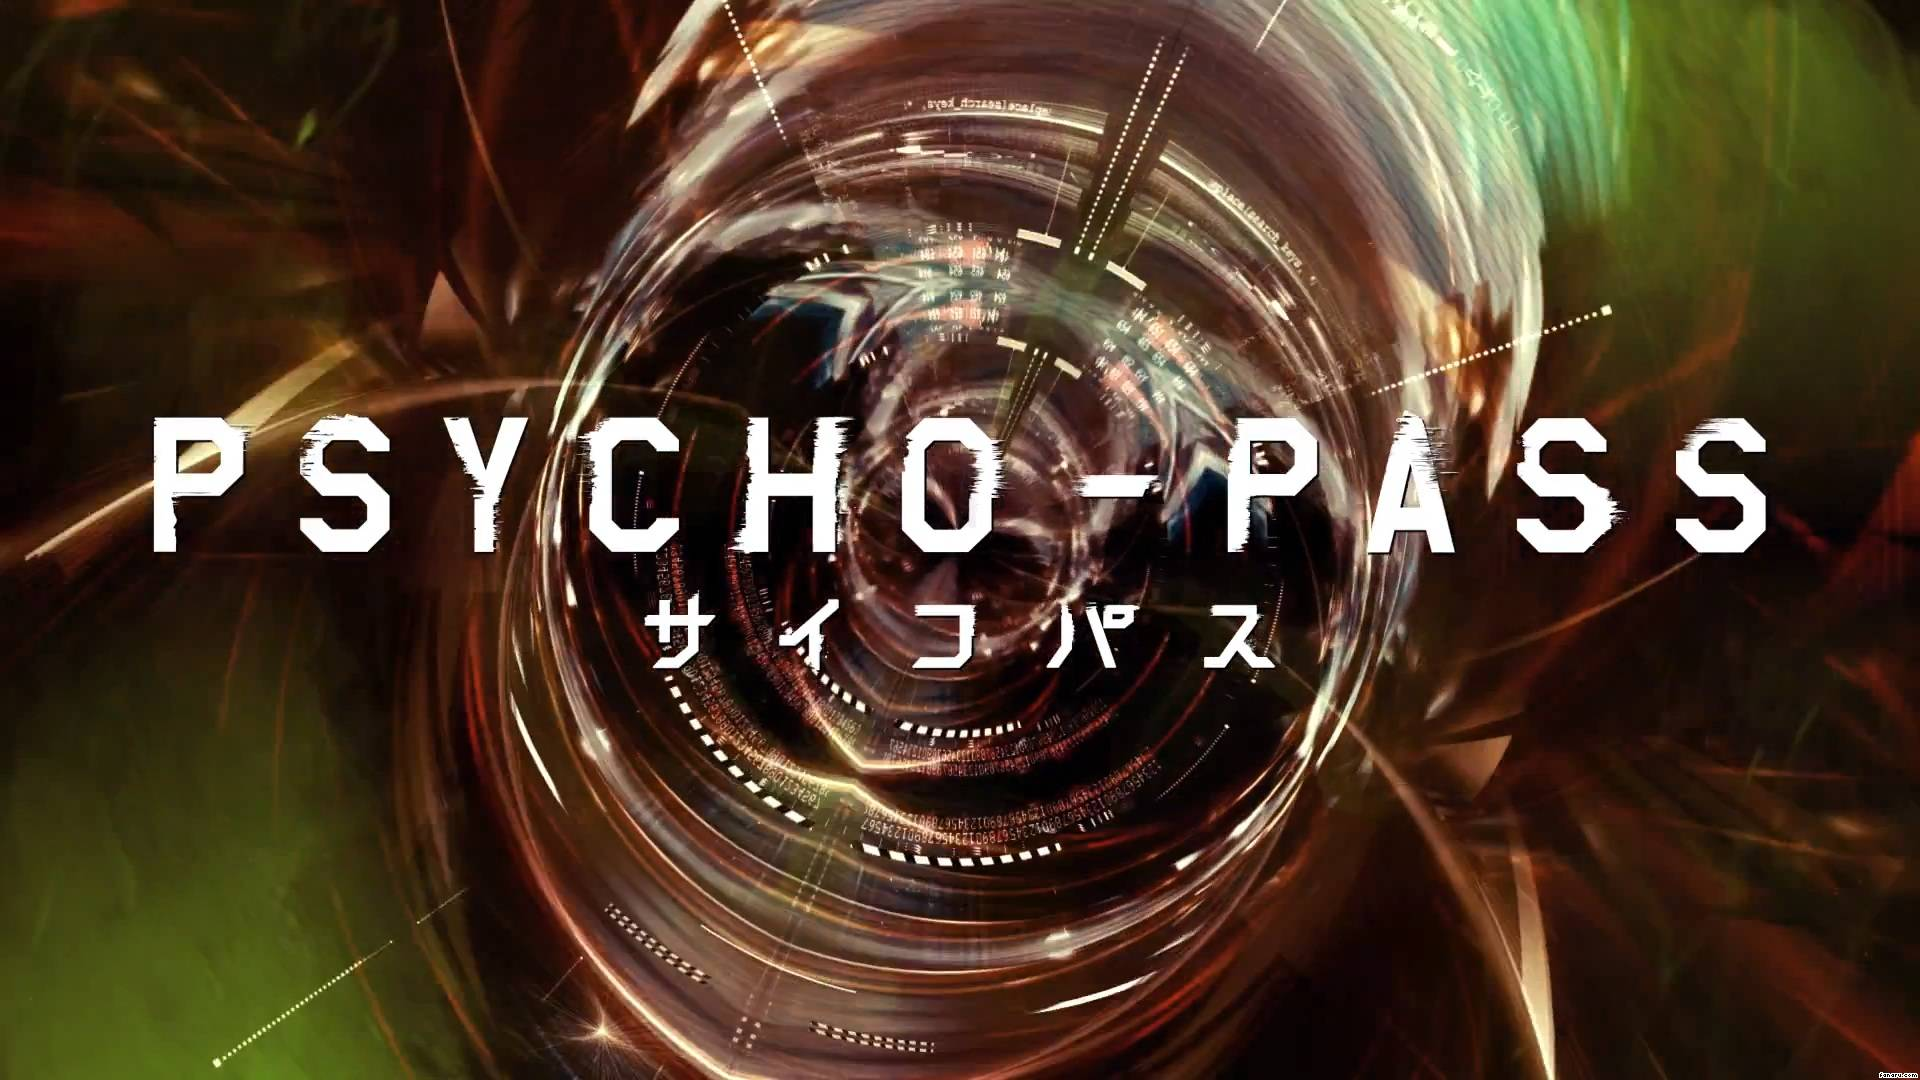 Psycho Pass Wallpapers Pictures Images